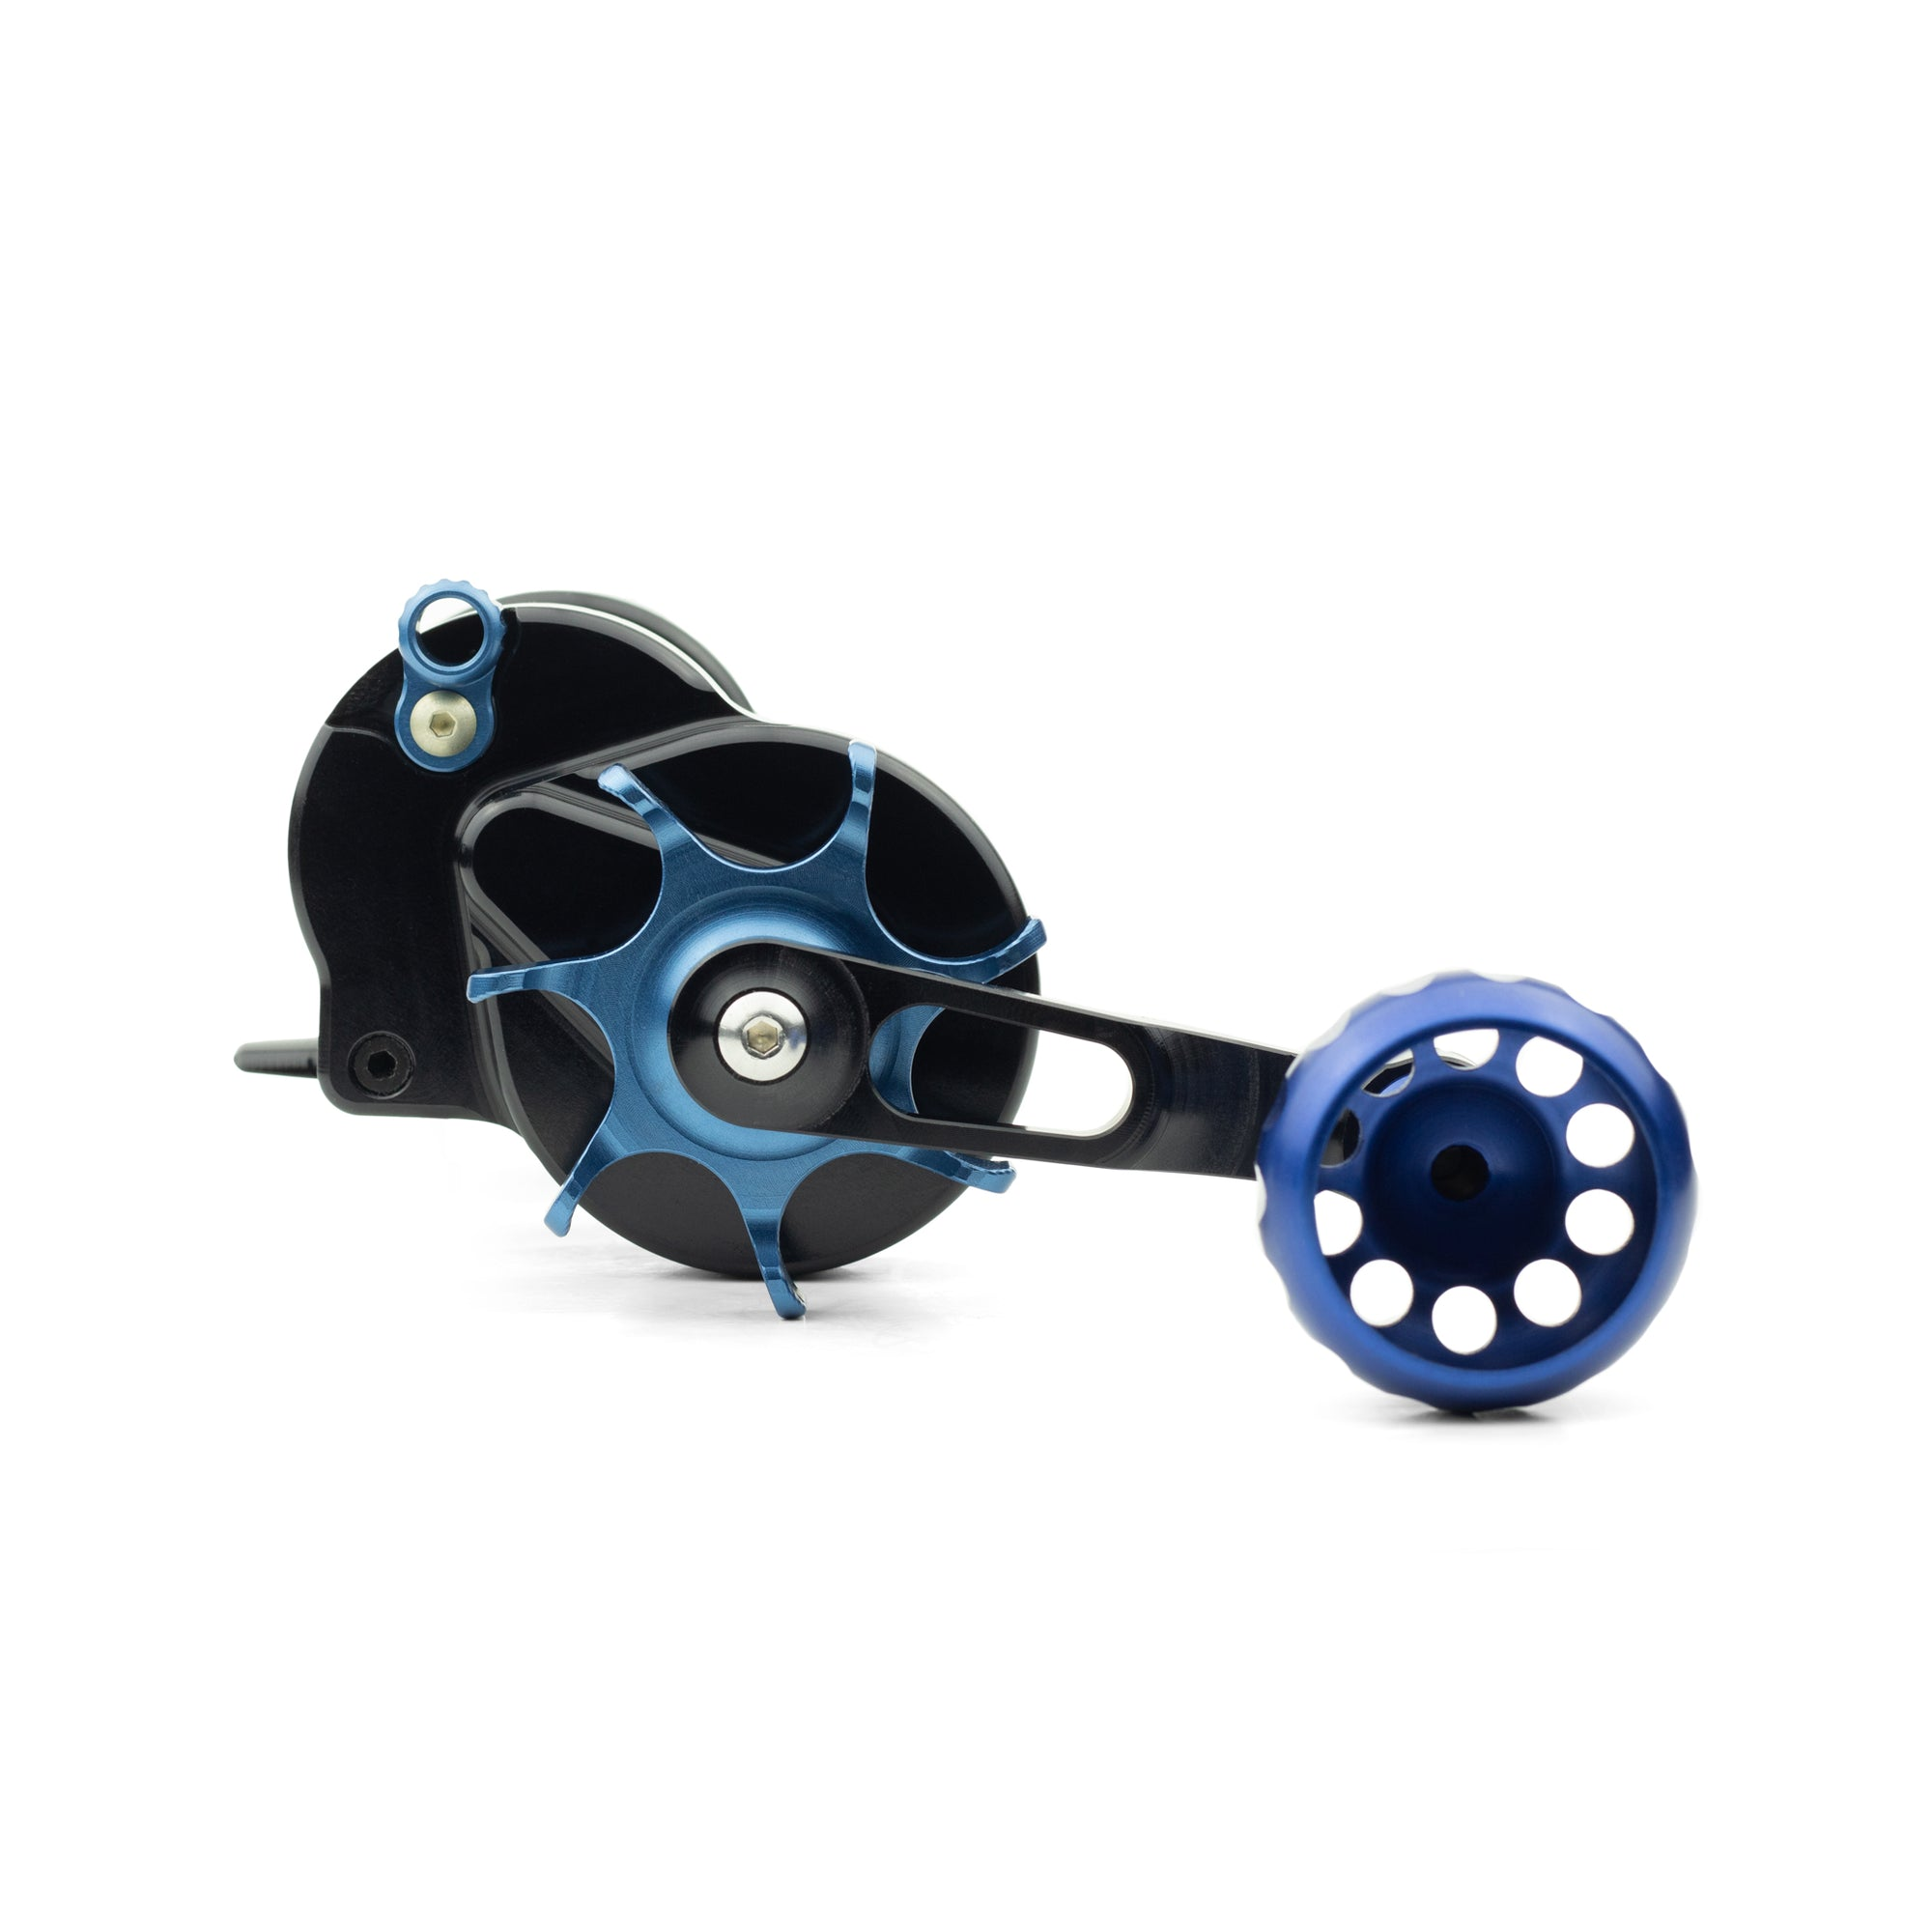 Seigler's star mag fishing reel for surf casting with blue accents.